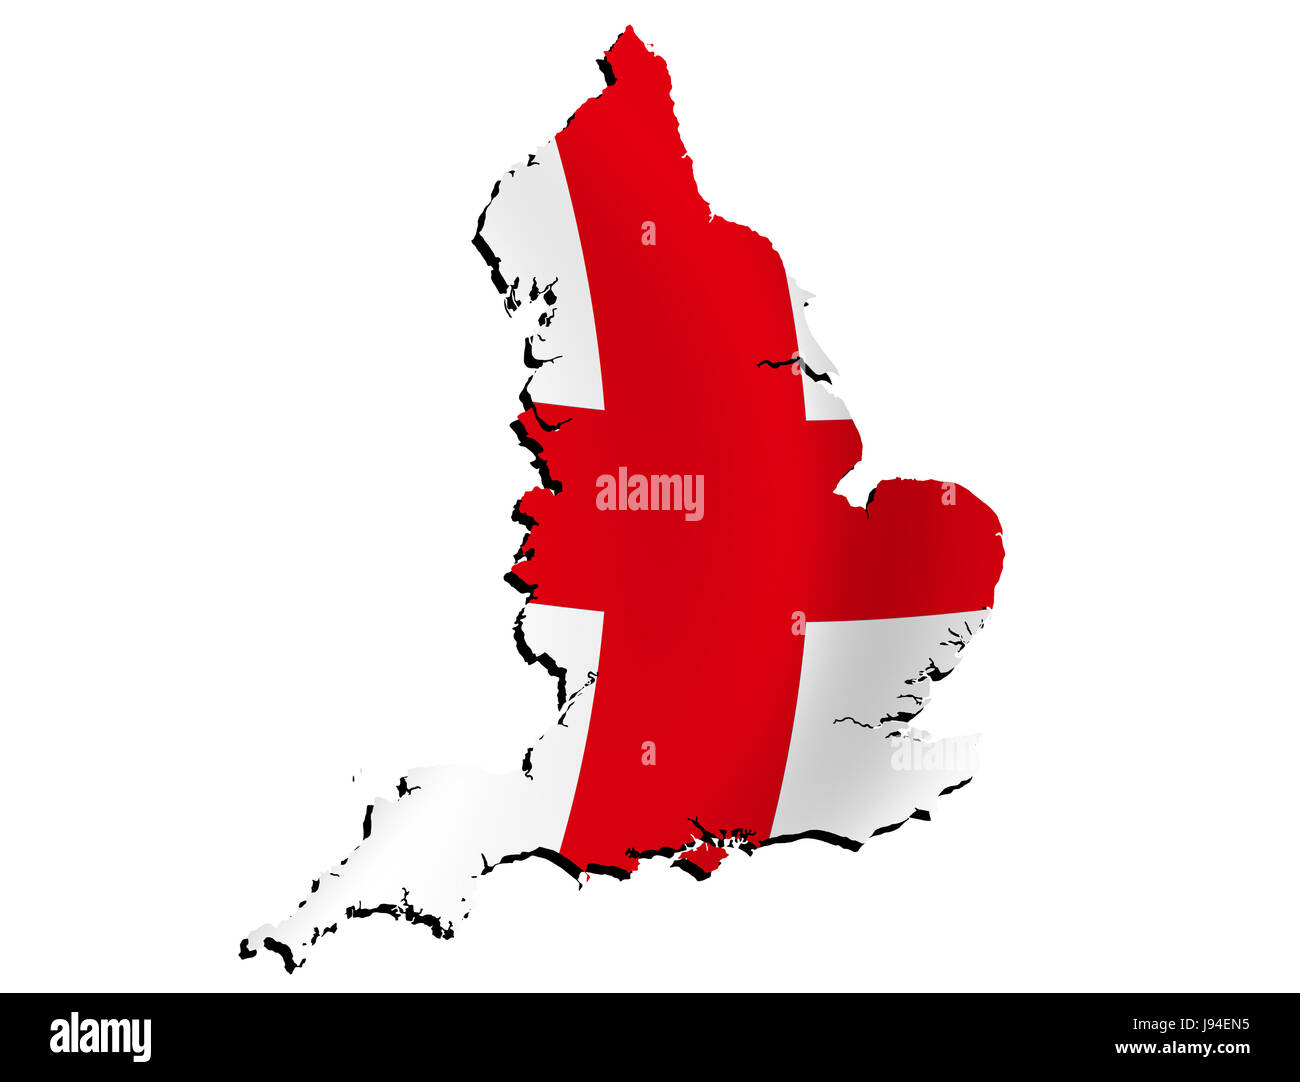 England flag border outline atlas map of the world map detail england flag border outline atlas map of the world map detail isolated gumiabroncs Images